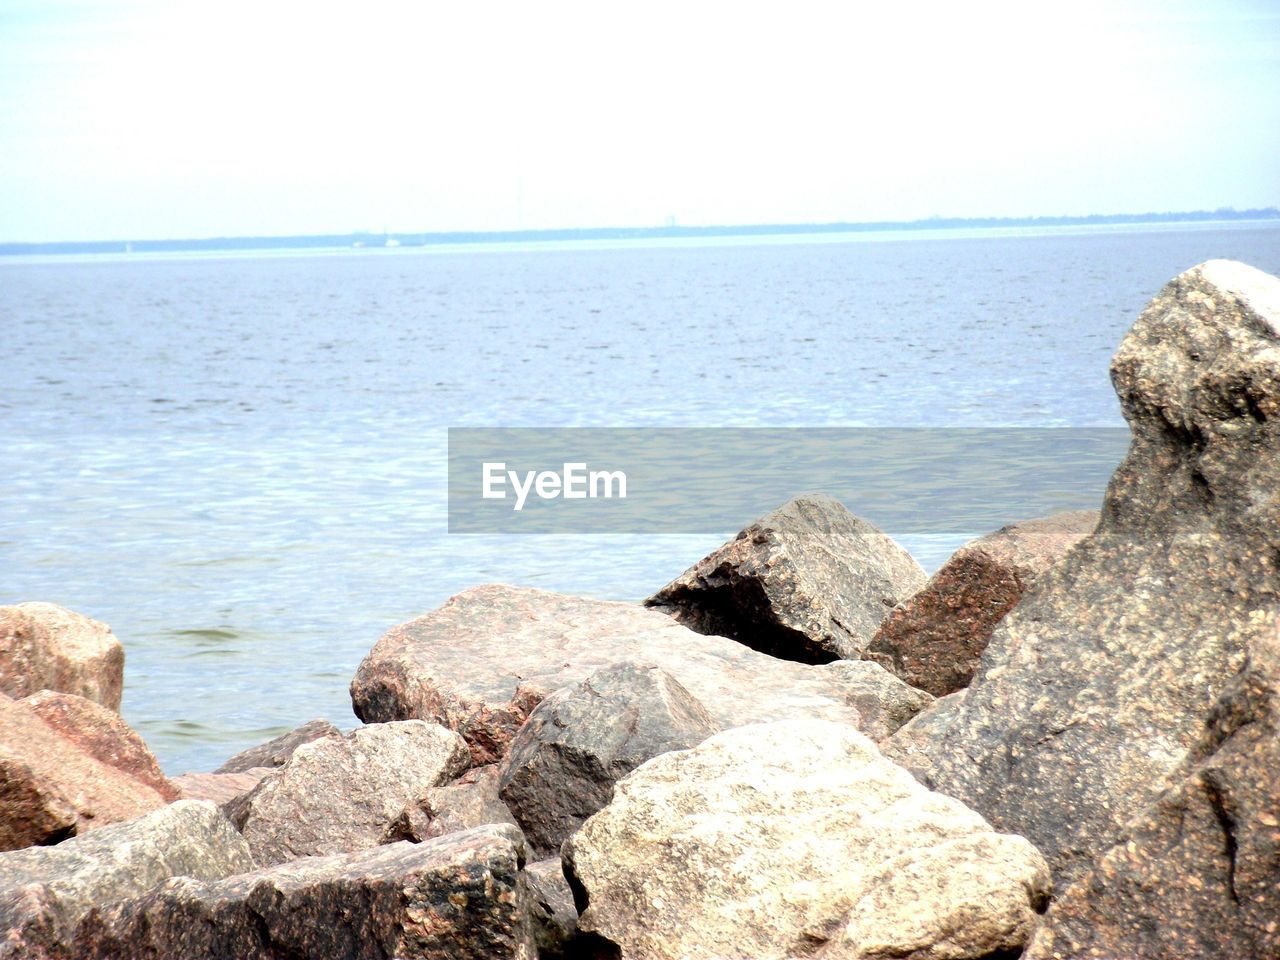 sea, water, rock - object, horizon over water, nature, scenics, beauty in nature, tranquil scene, tranquility, outdoors, day, beach, no people, sky, clear sky, pebble beach